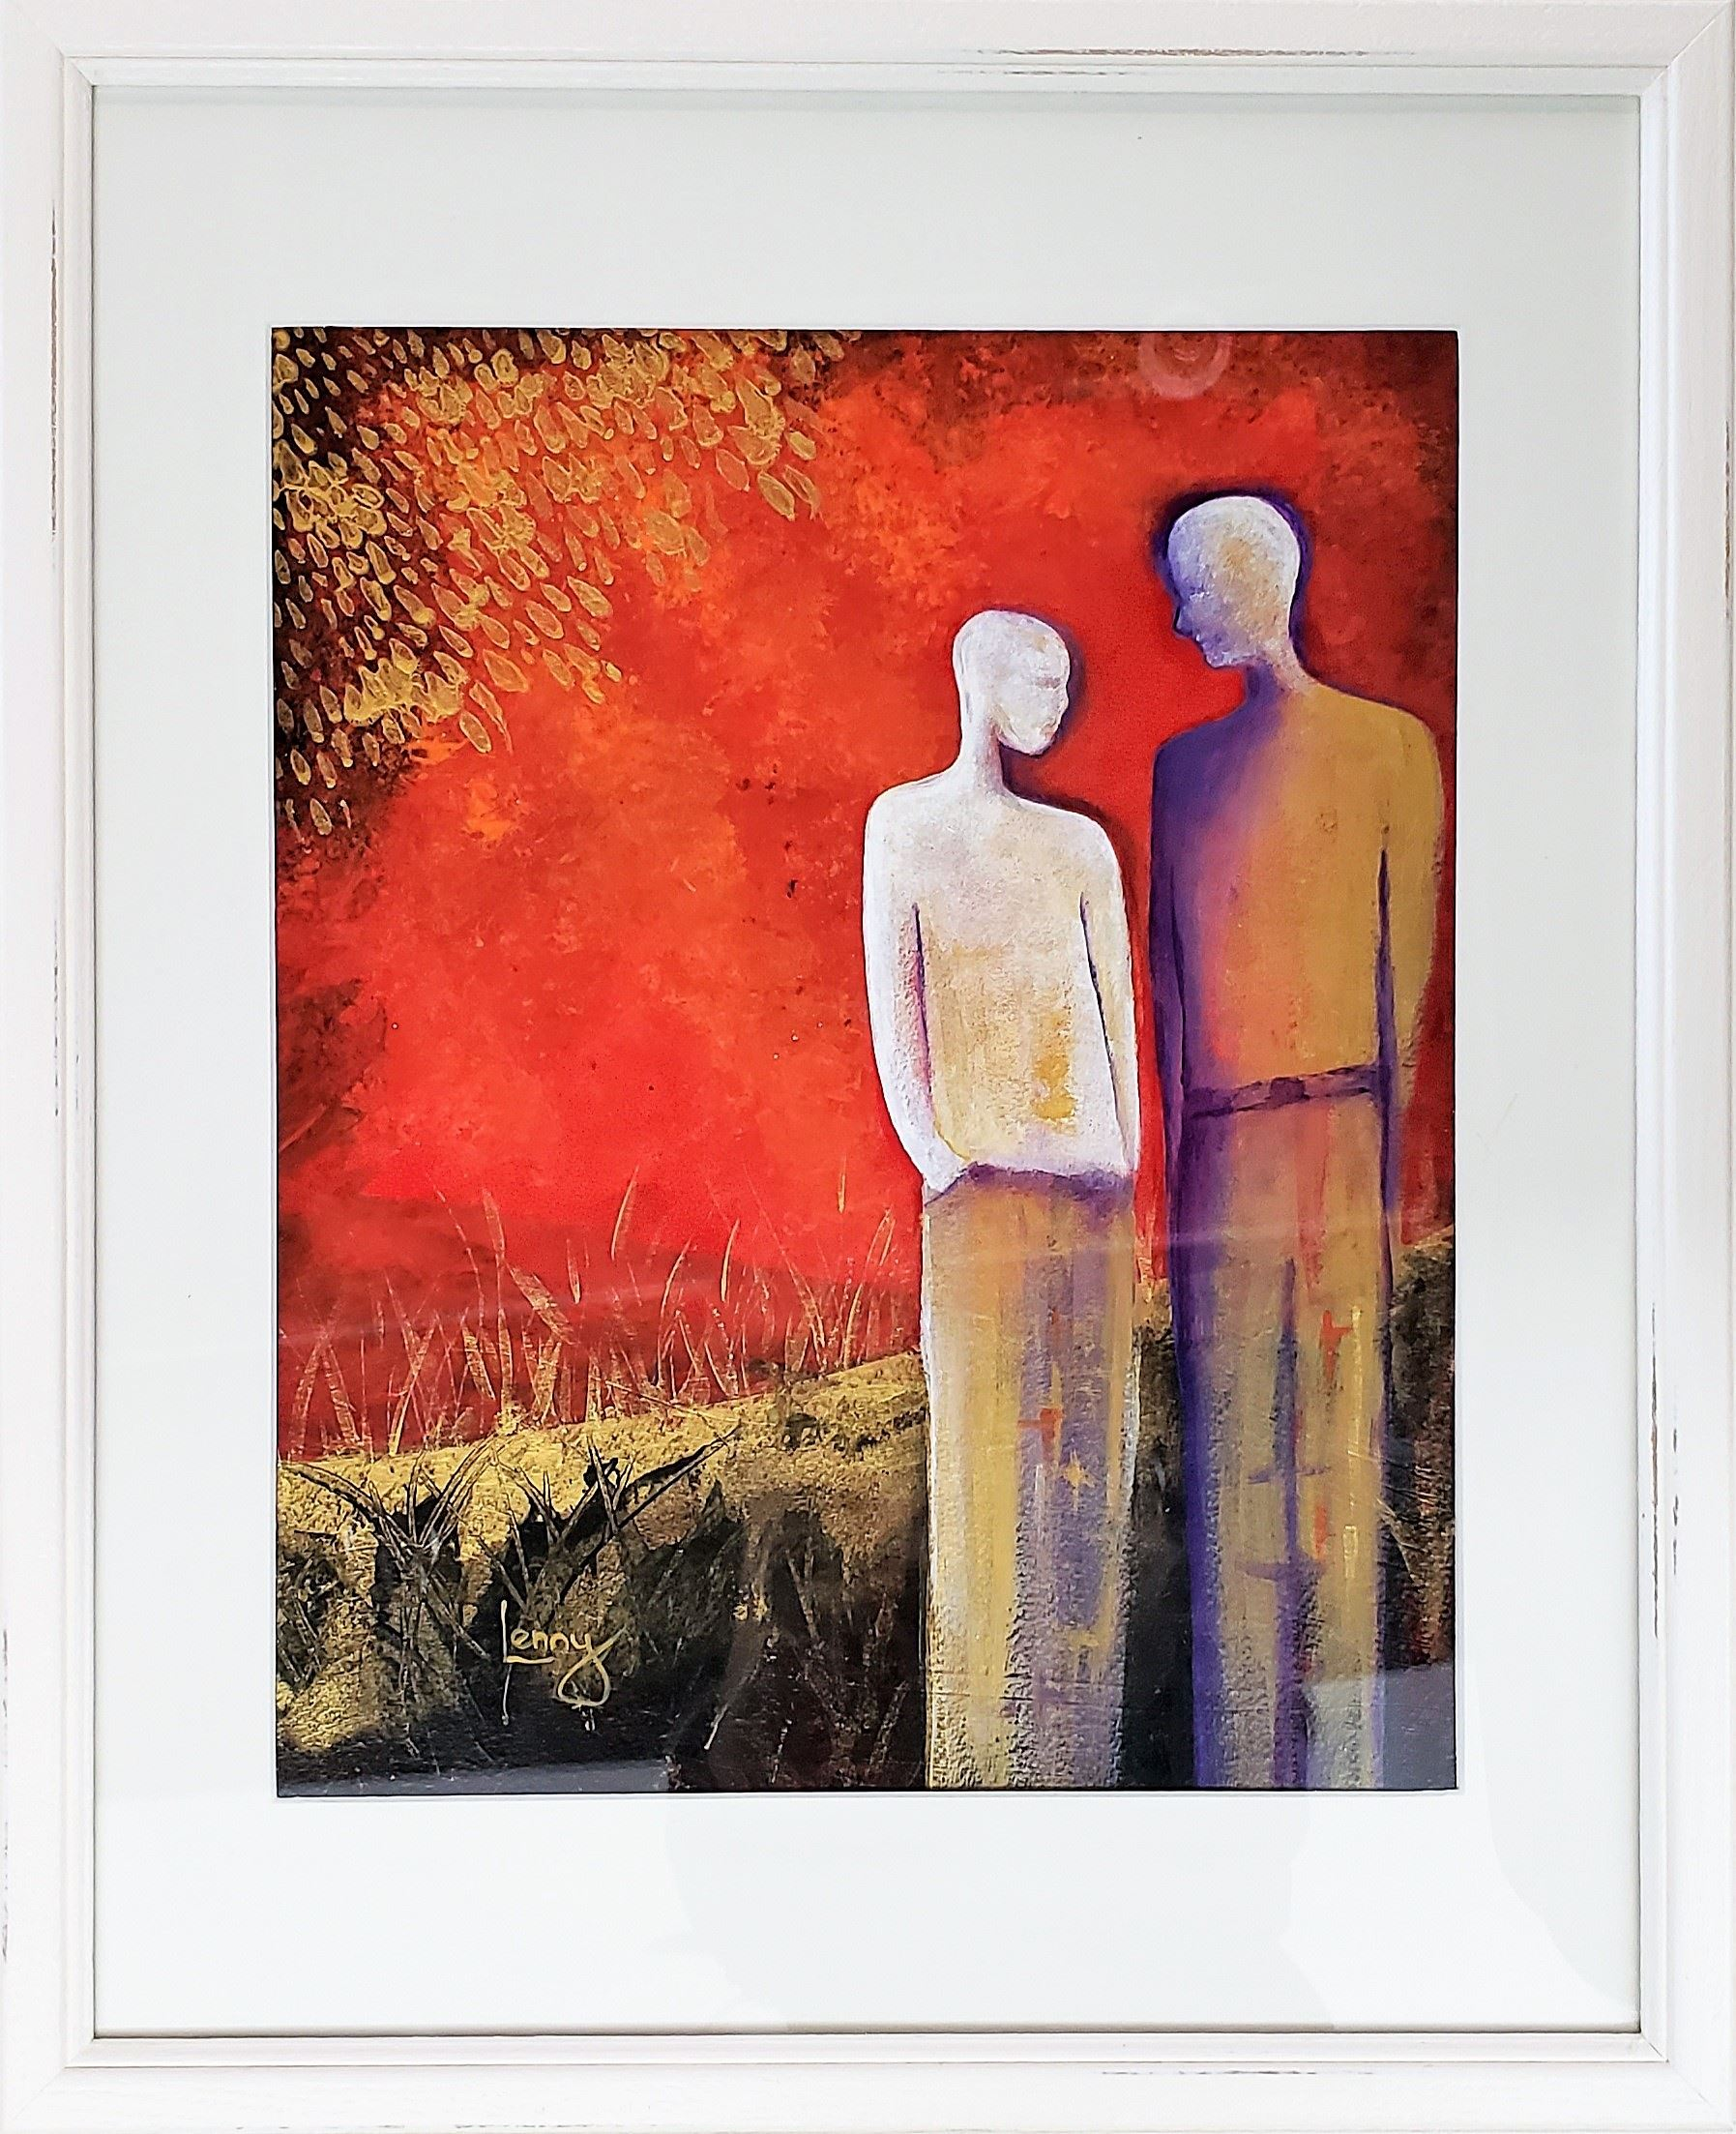 An acrylic painting by Lenny Harm depicting two figures standing close to one another with a red sky